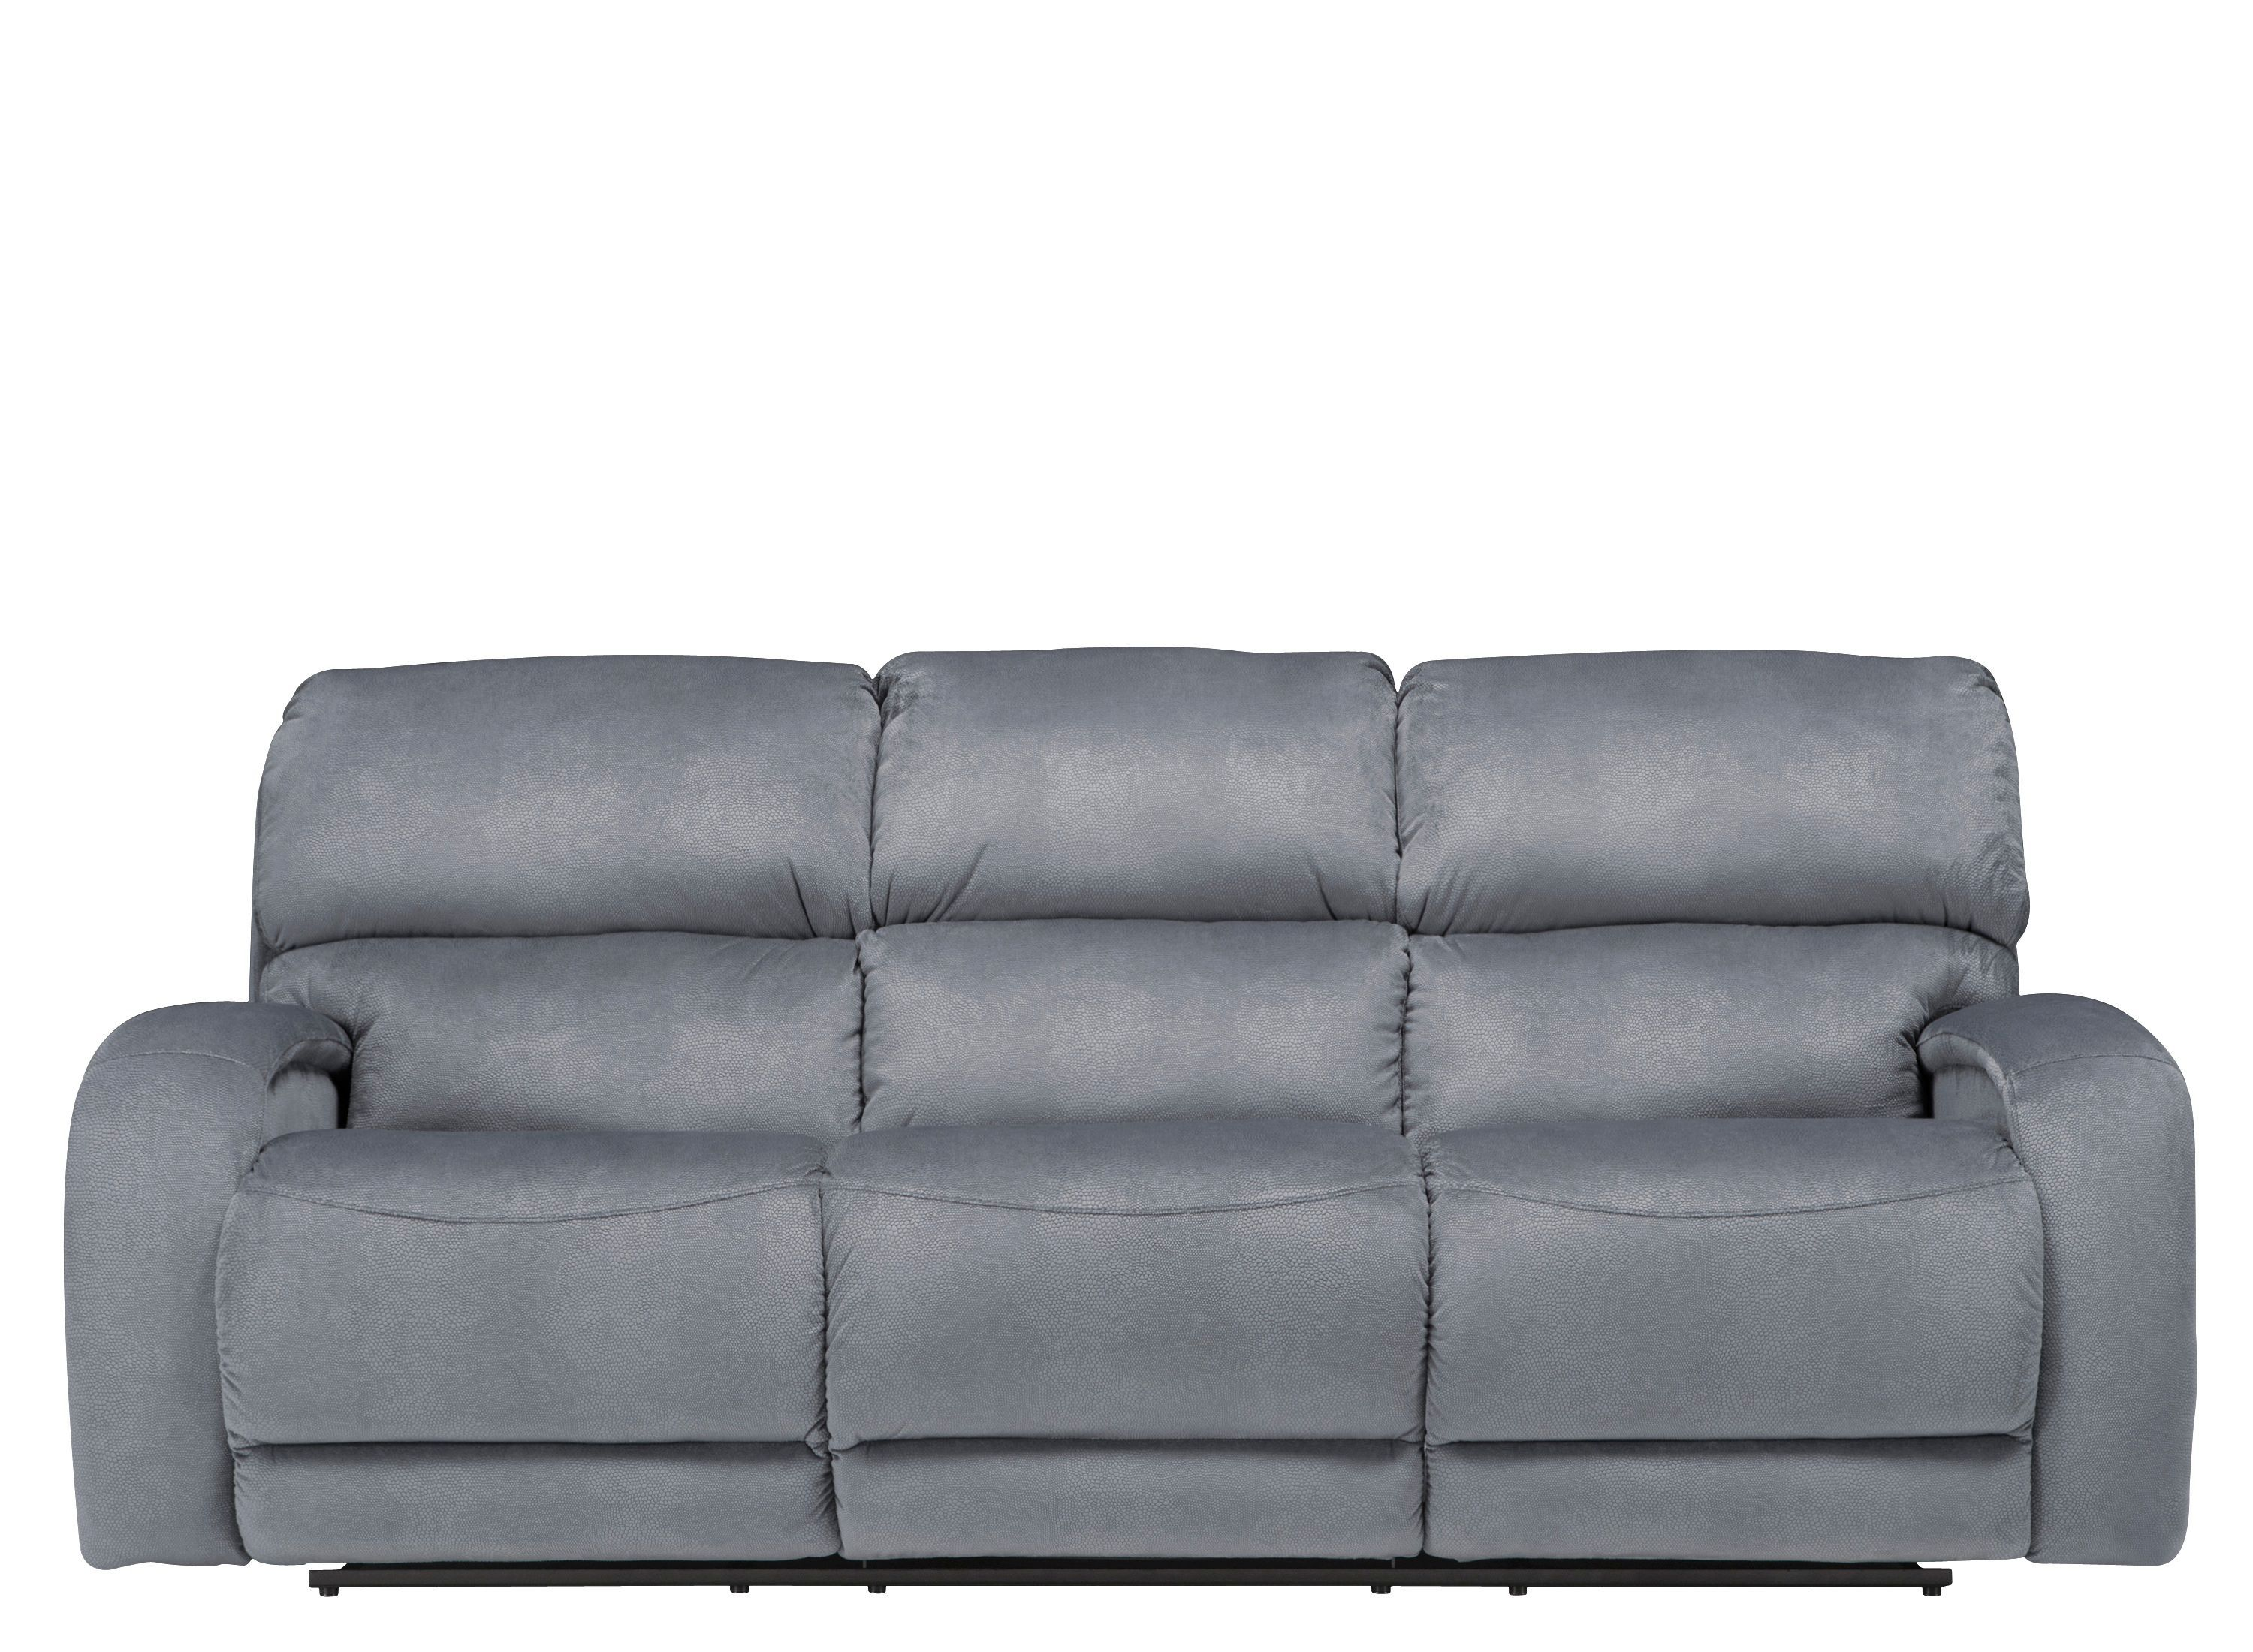 Wondrous Kelley Microfiber Power Reclining Sofa Families Will Love Gamerscity Chair Design For Home Gamerscityorg